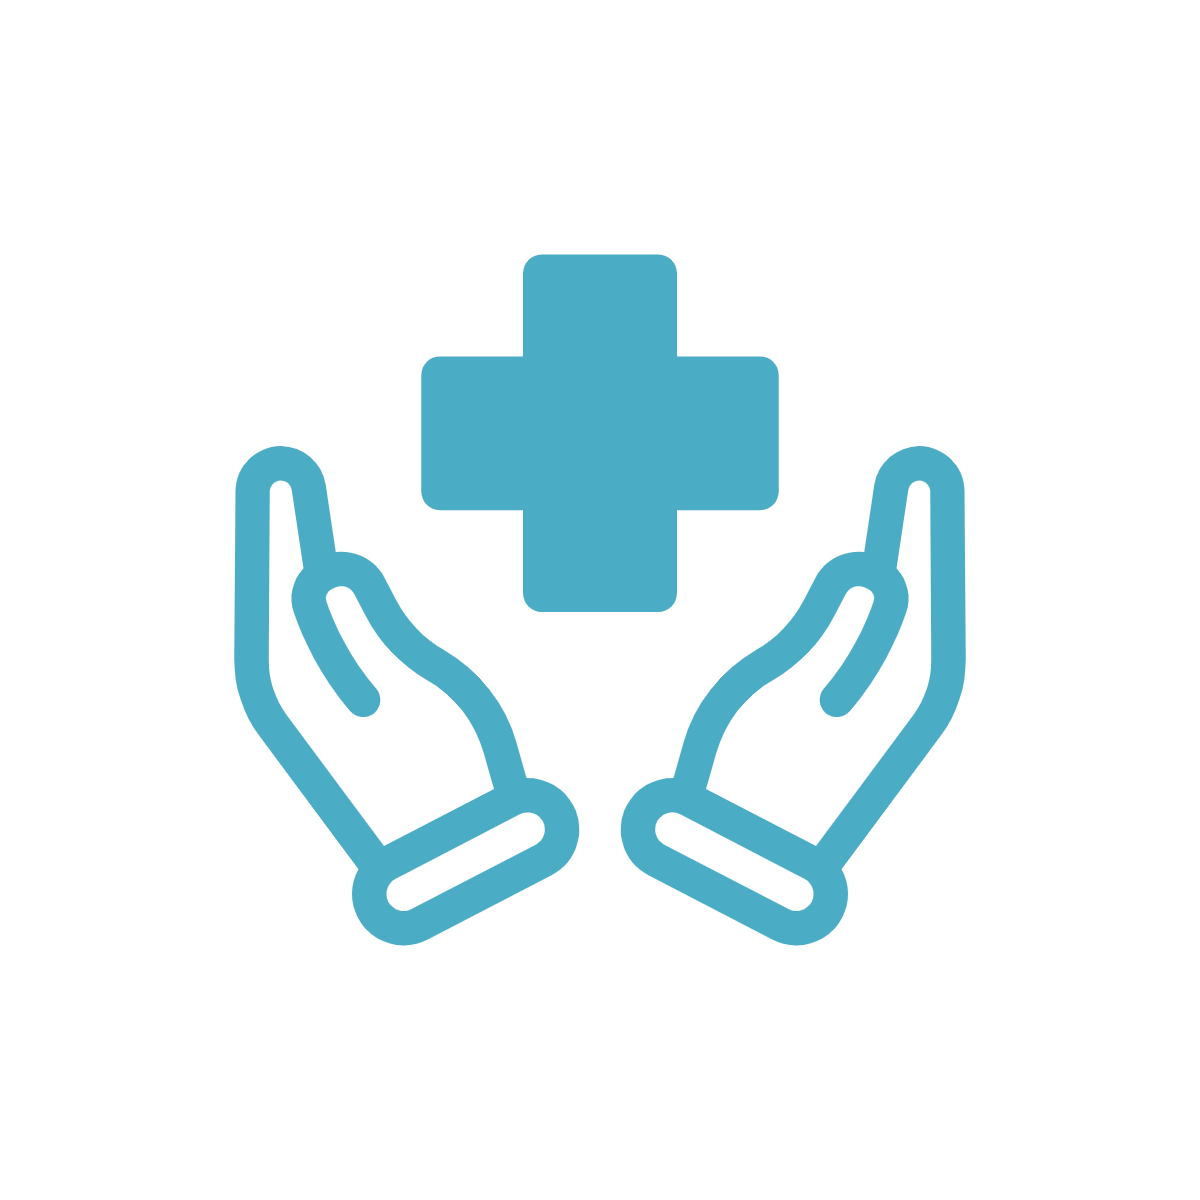 Teal green/blue icon of two hands holding the health care cross